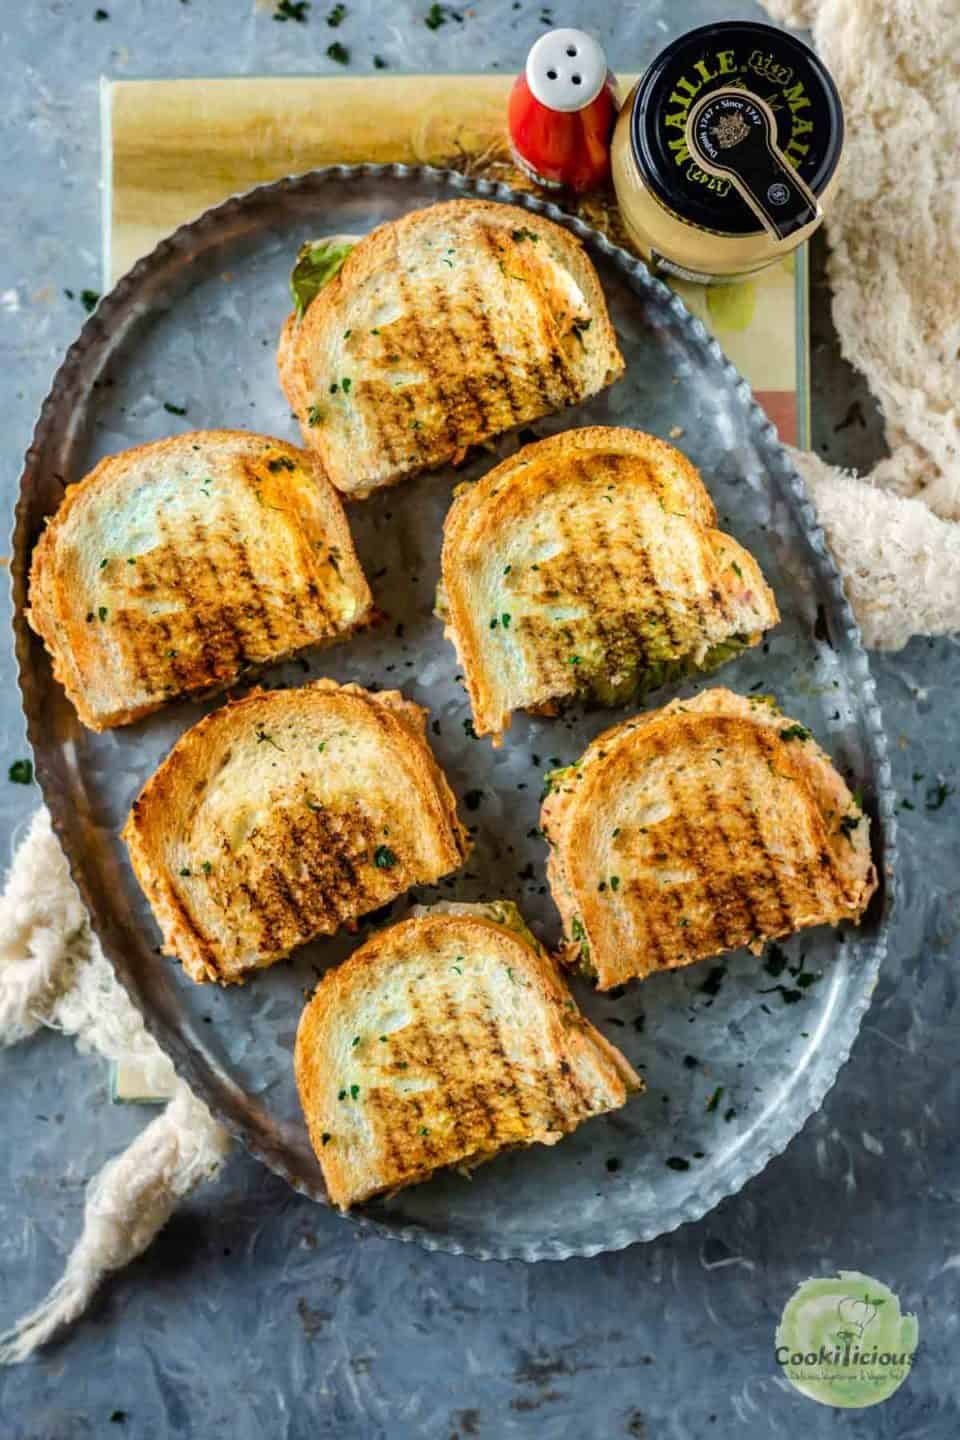 veggie sandwiches cut and served in a tray